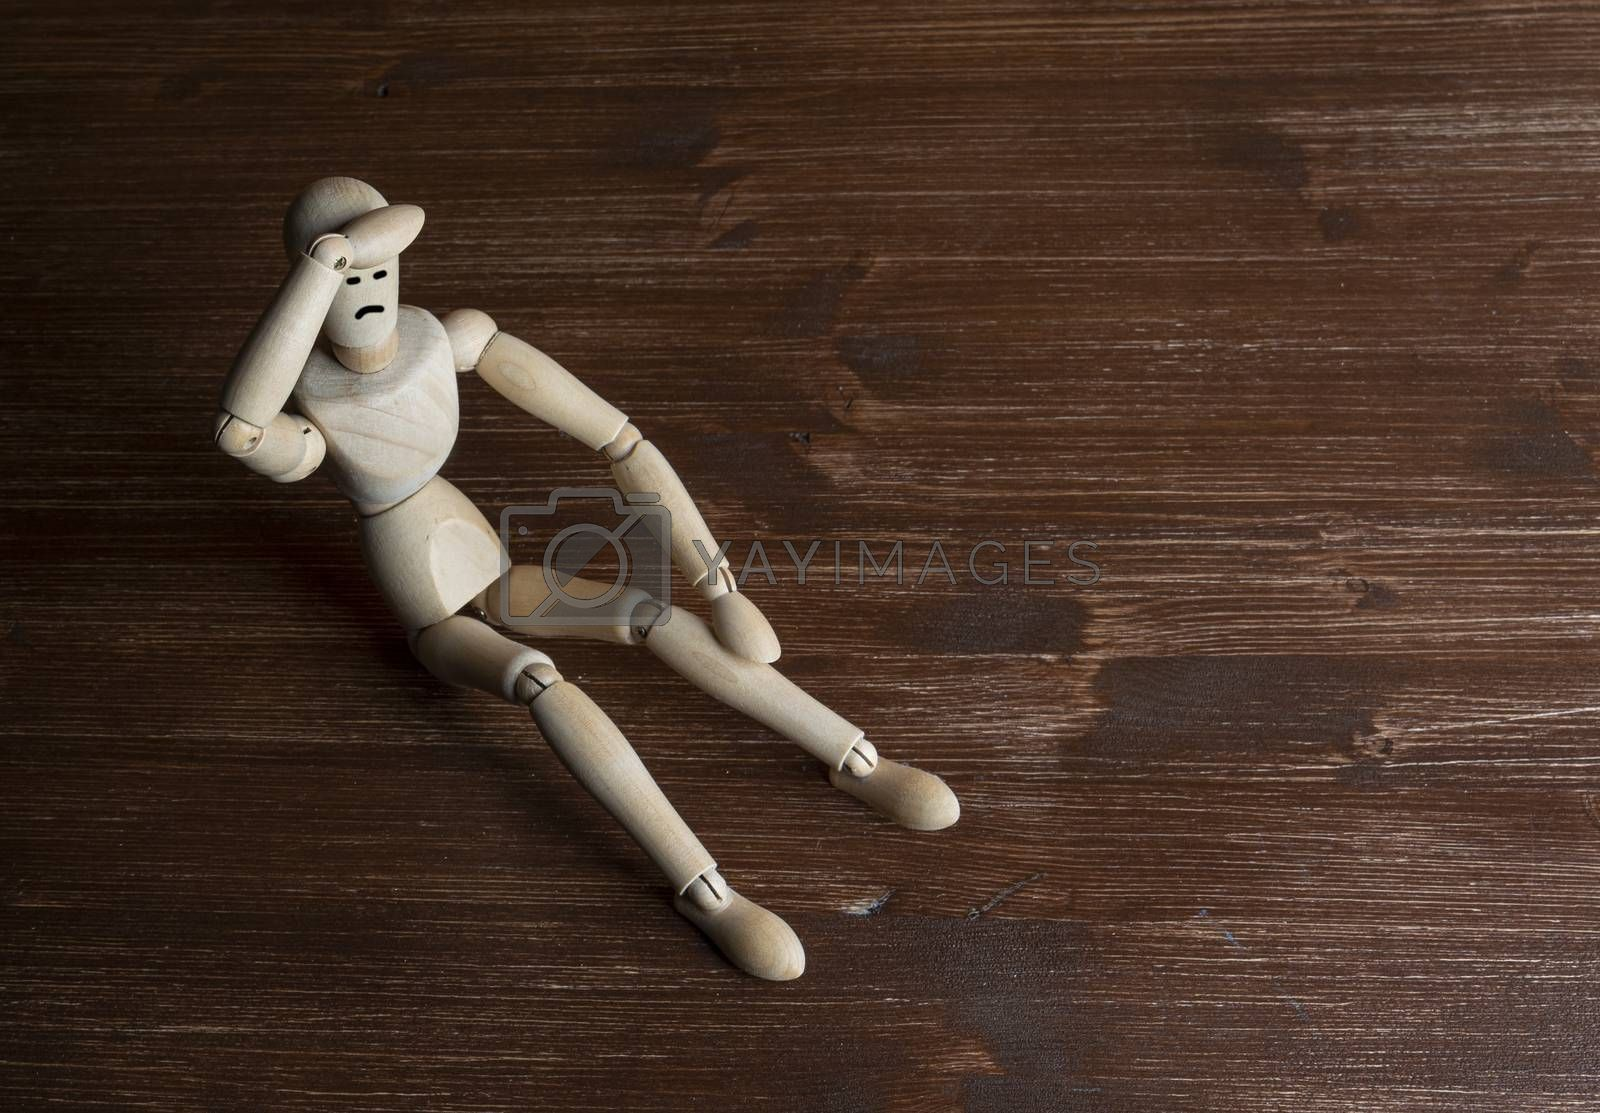 a wooden mannequin with his hands on his head in despair